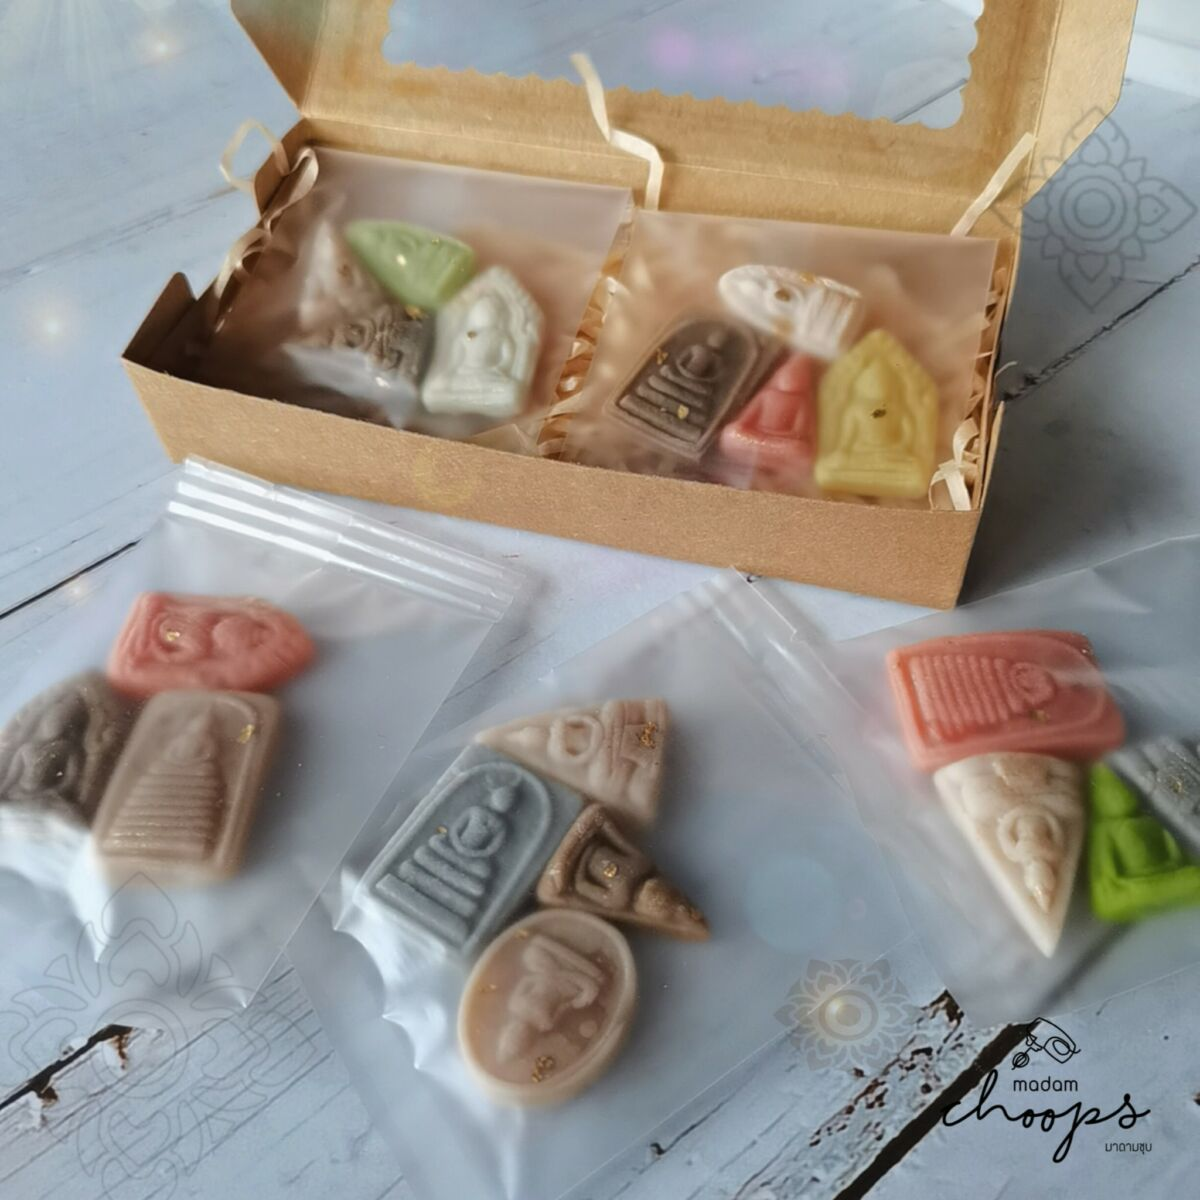 Thai sweet shop gets mixed reviews over Buddhist amulet candies | News by Thaiger